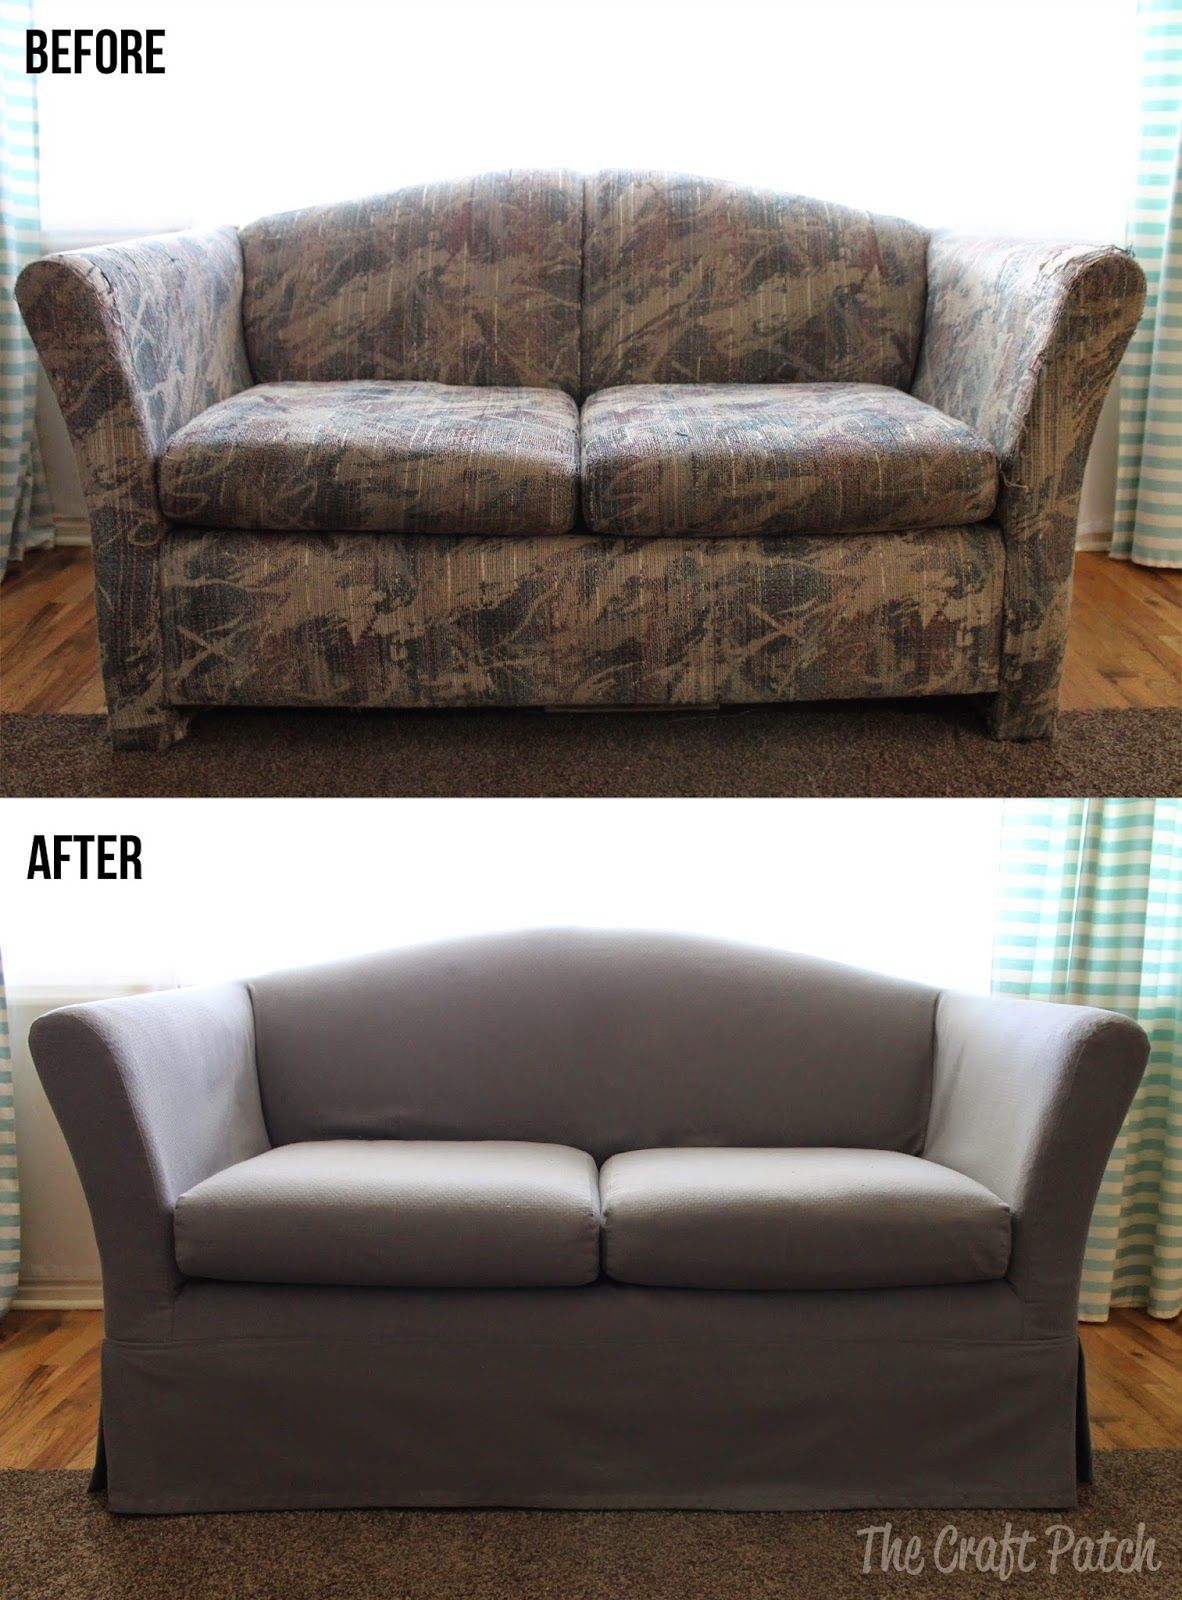 Awesome Couch Makeover With A Custom Slip Cover Sheesh